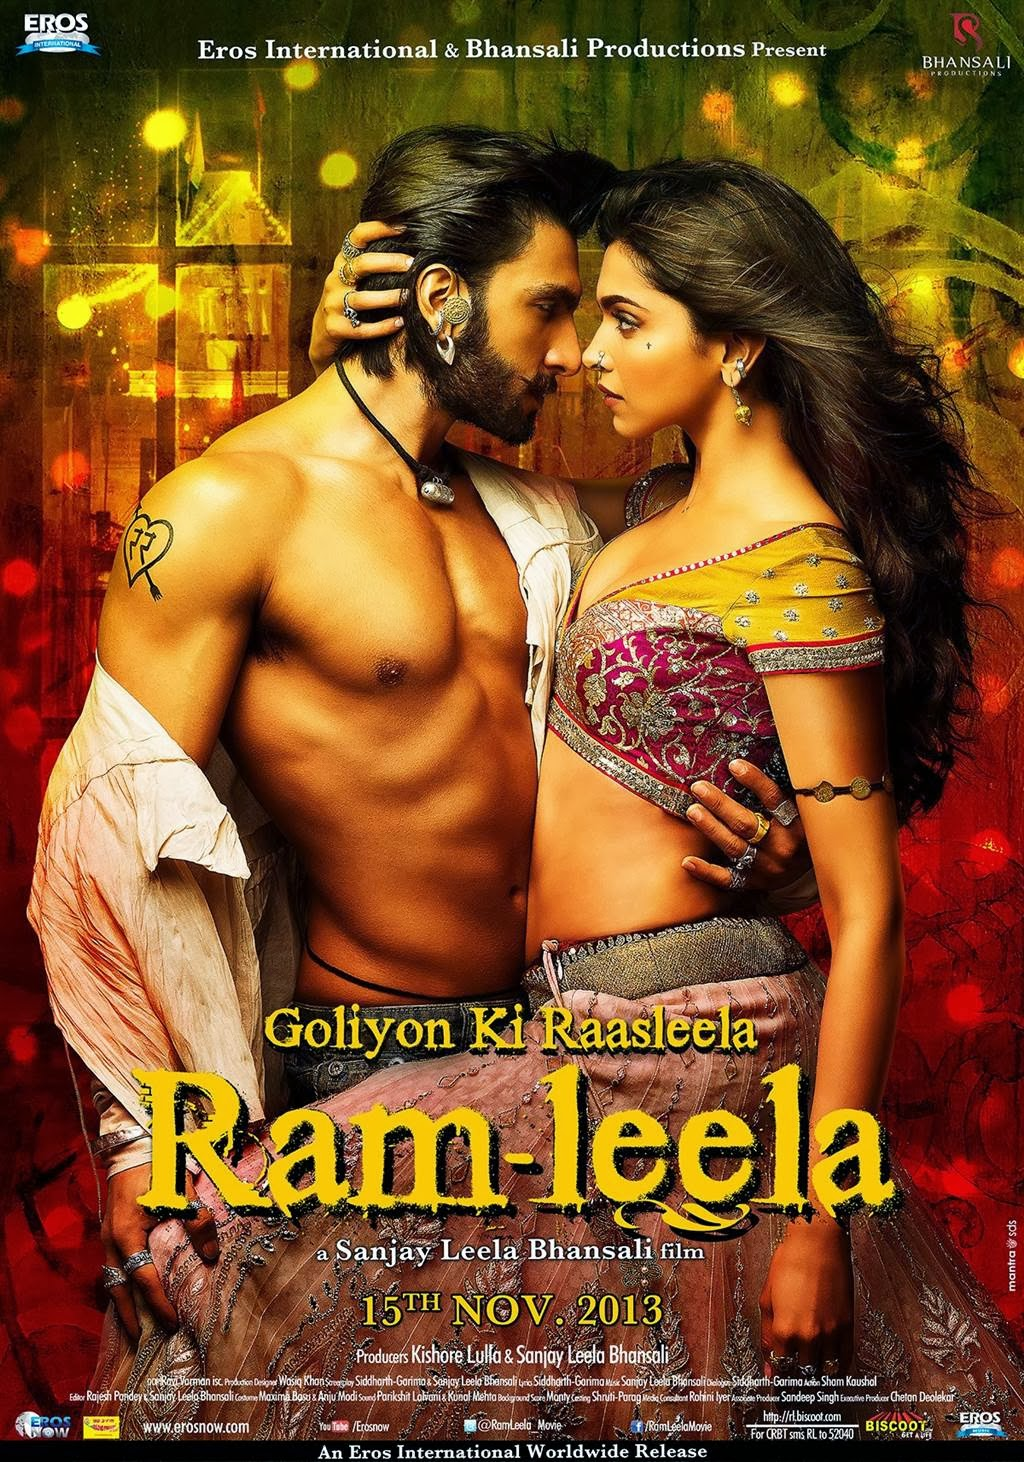 Movie Couples Images Ram Leela Hd Wallpaper And Background Photos